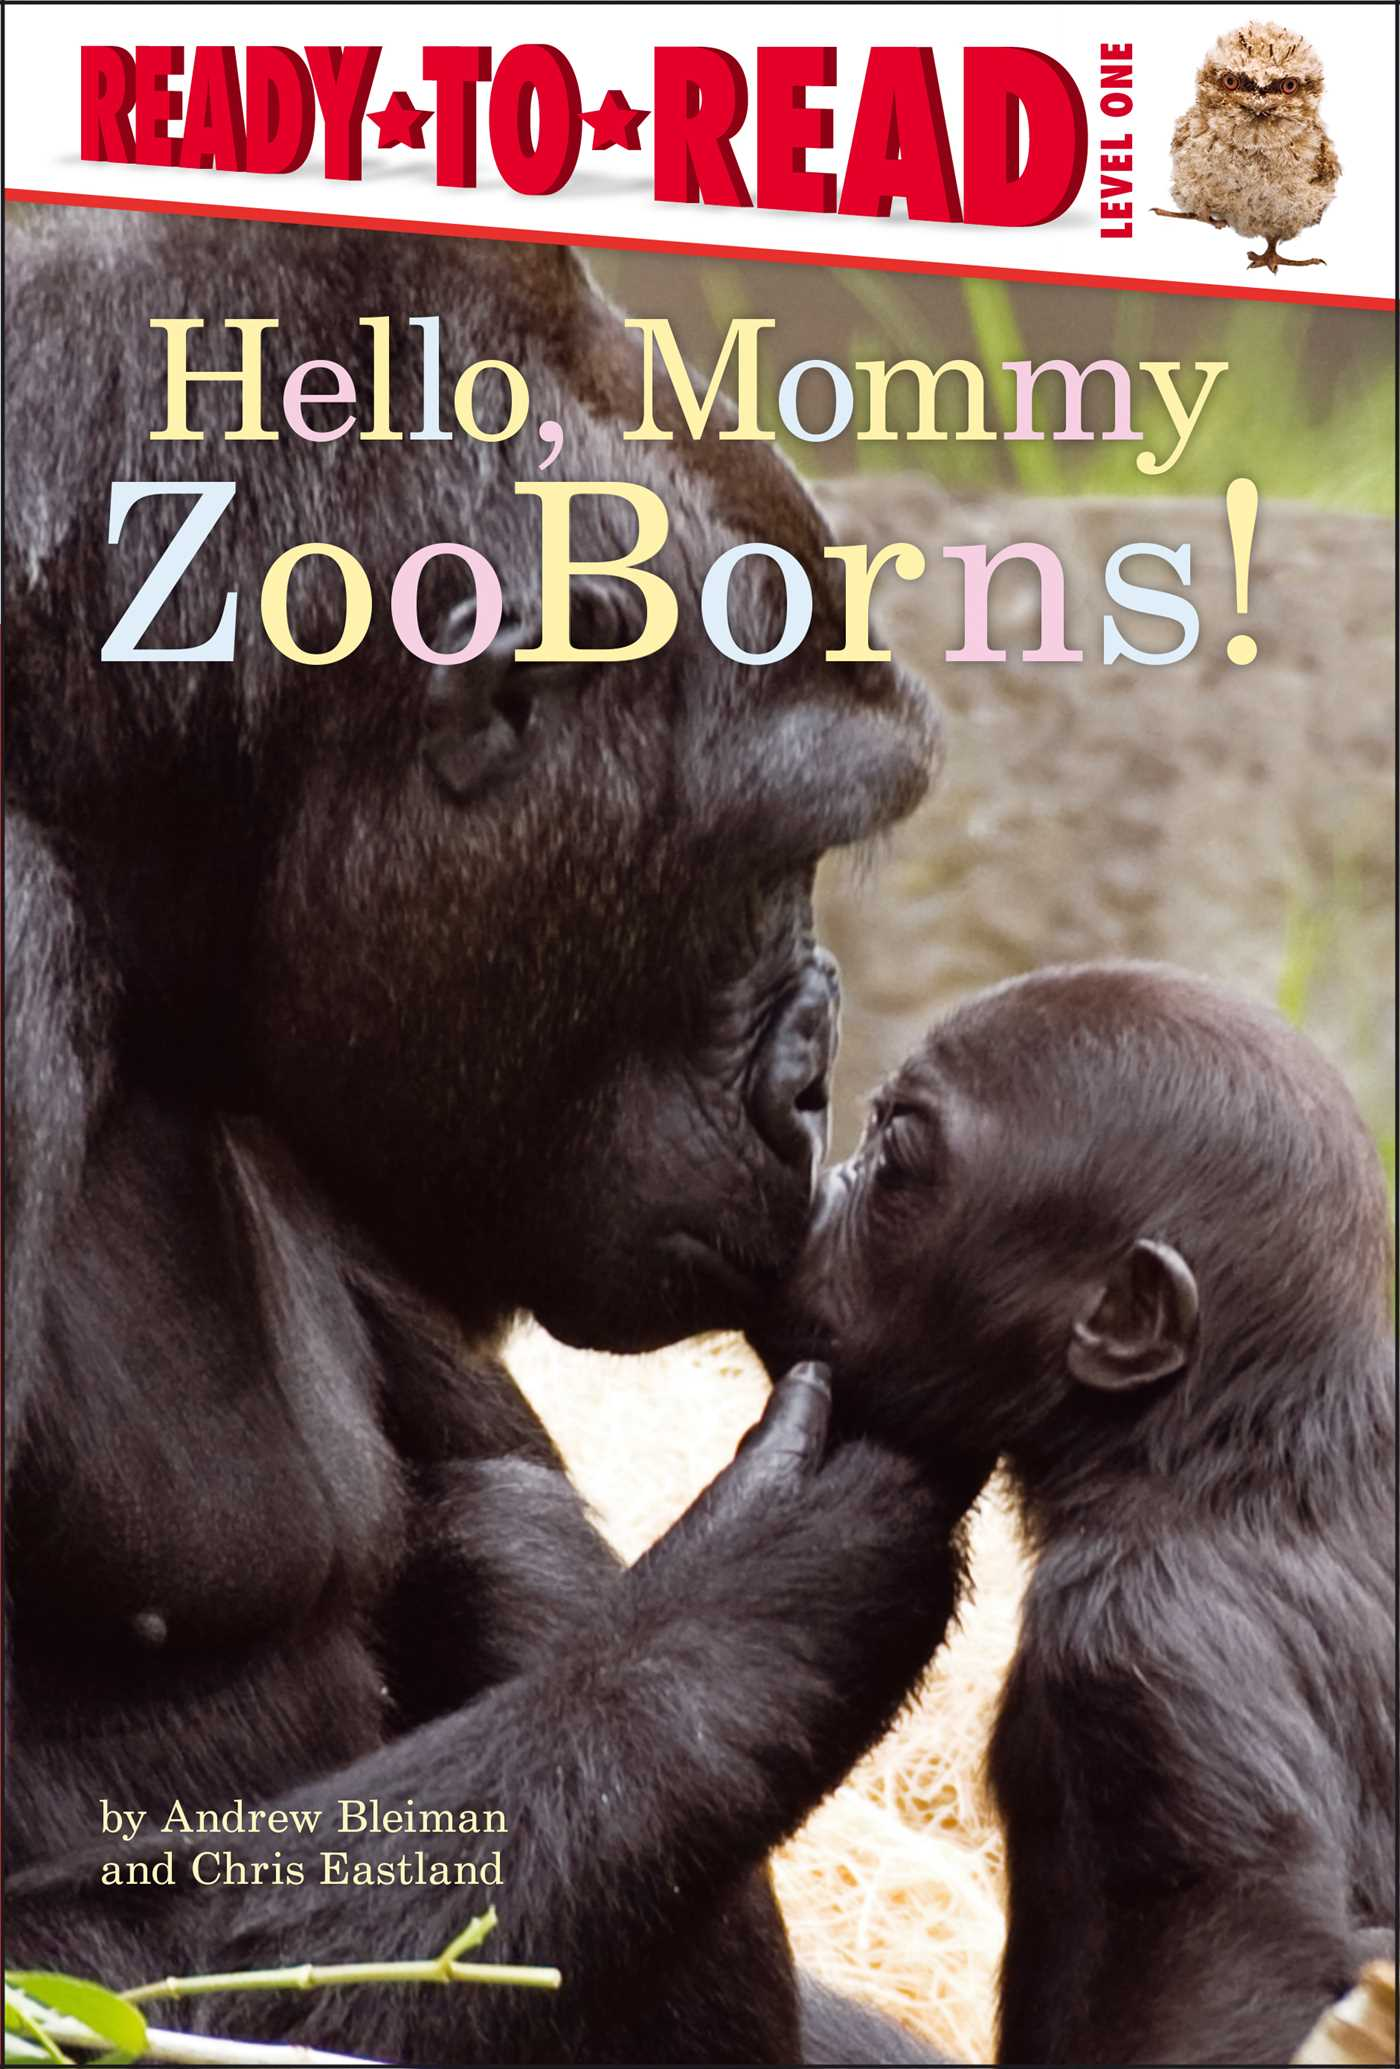 Hello-mommy-zooborns!-9781442443822_hr